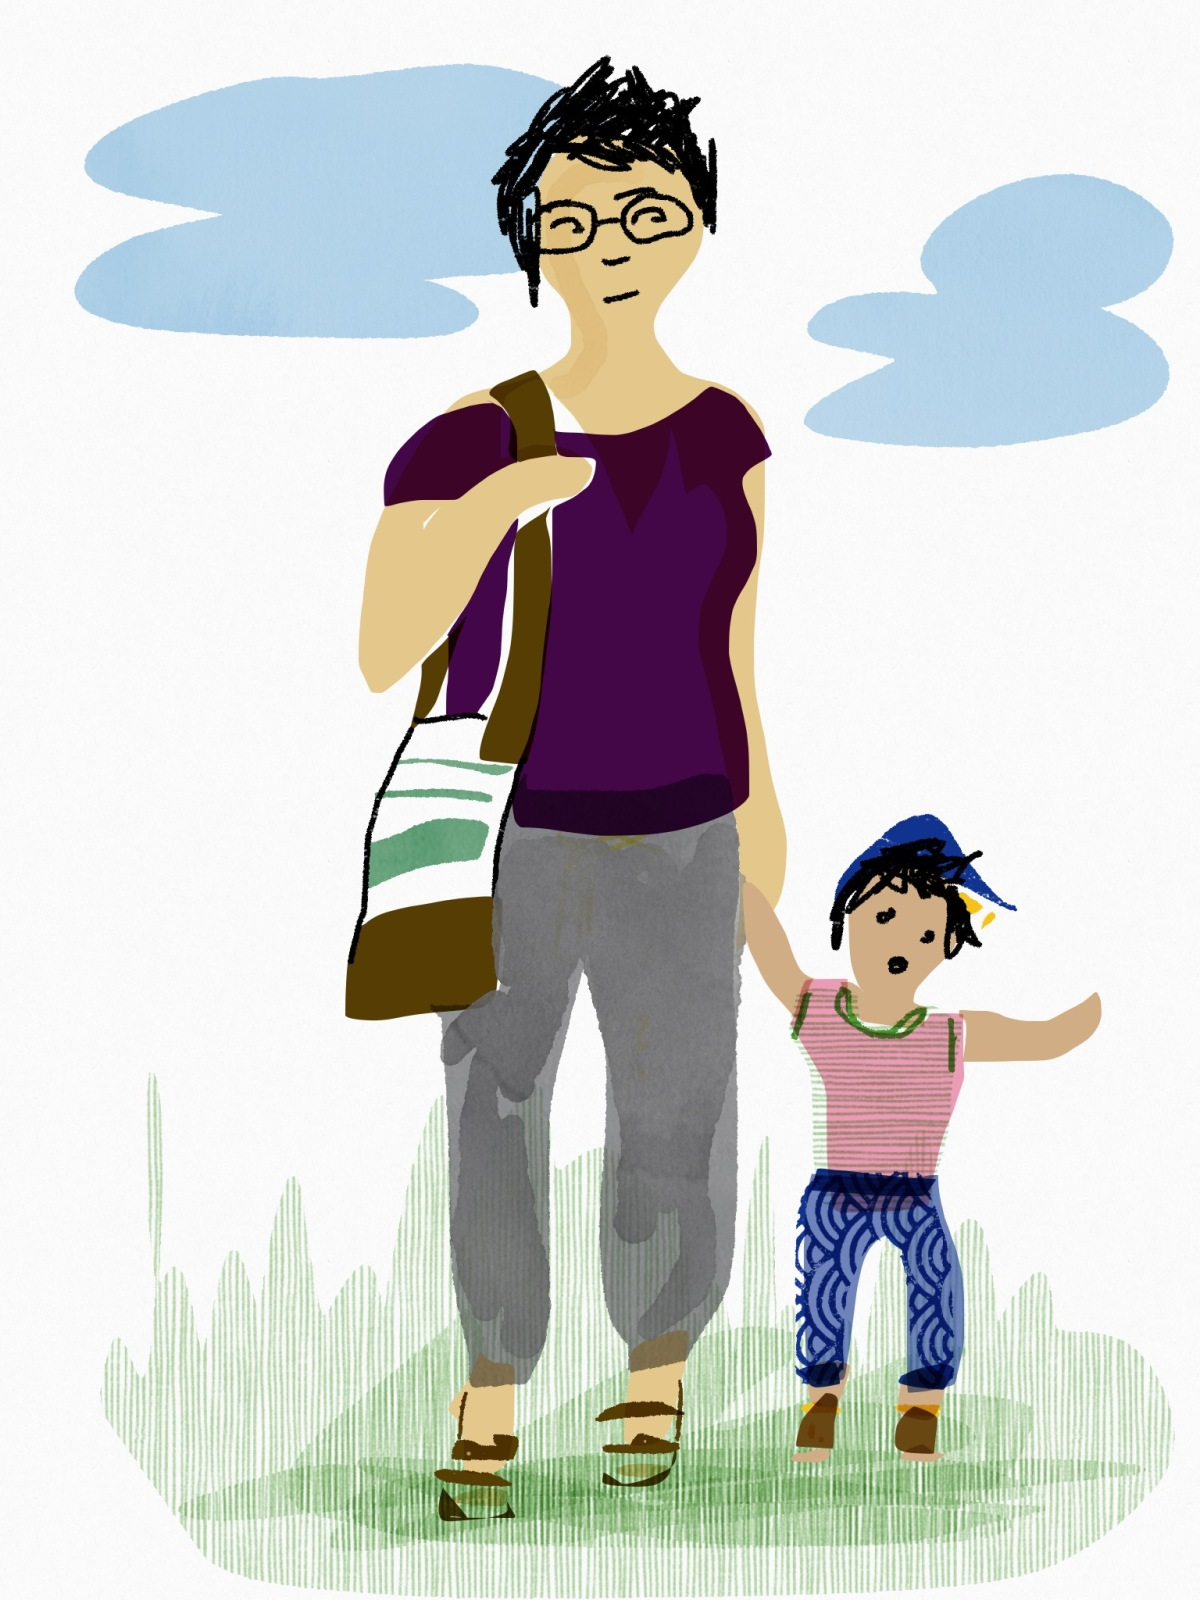 Digital drawing of a dark-haired, light-brown-skinned mother and toddler